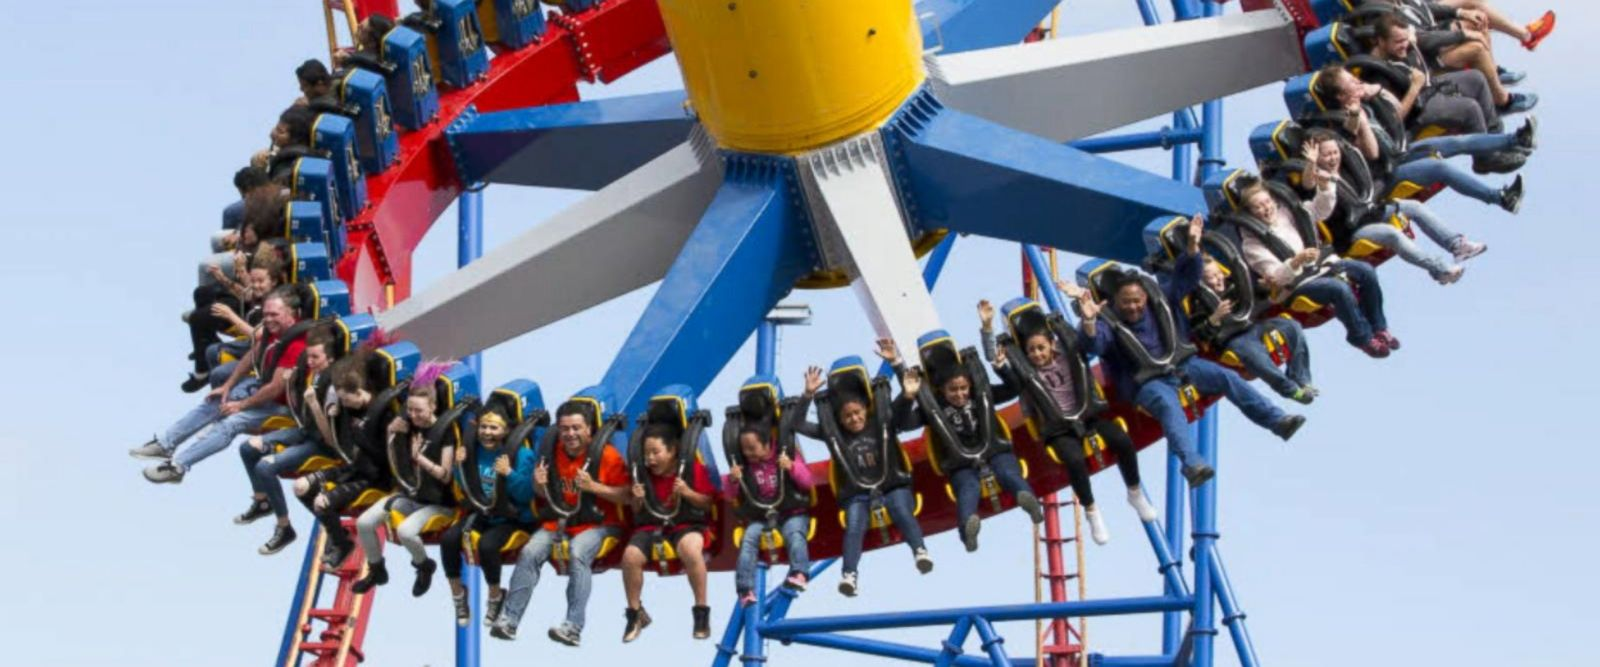 VIDEO: Best amusement parks for families in 2017